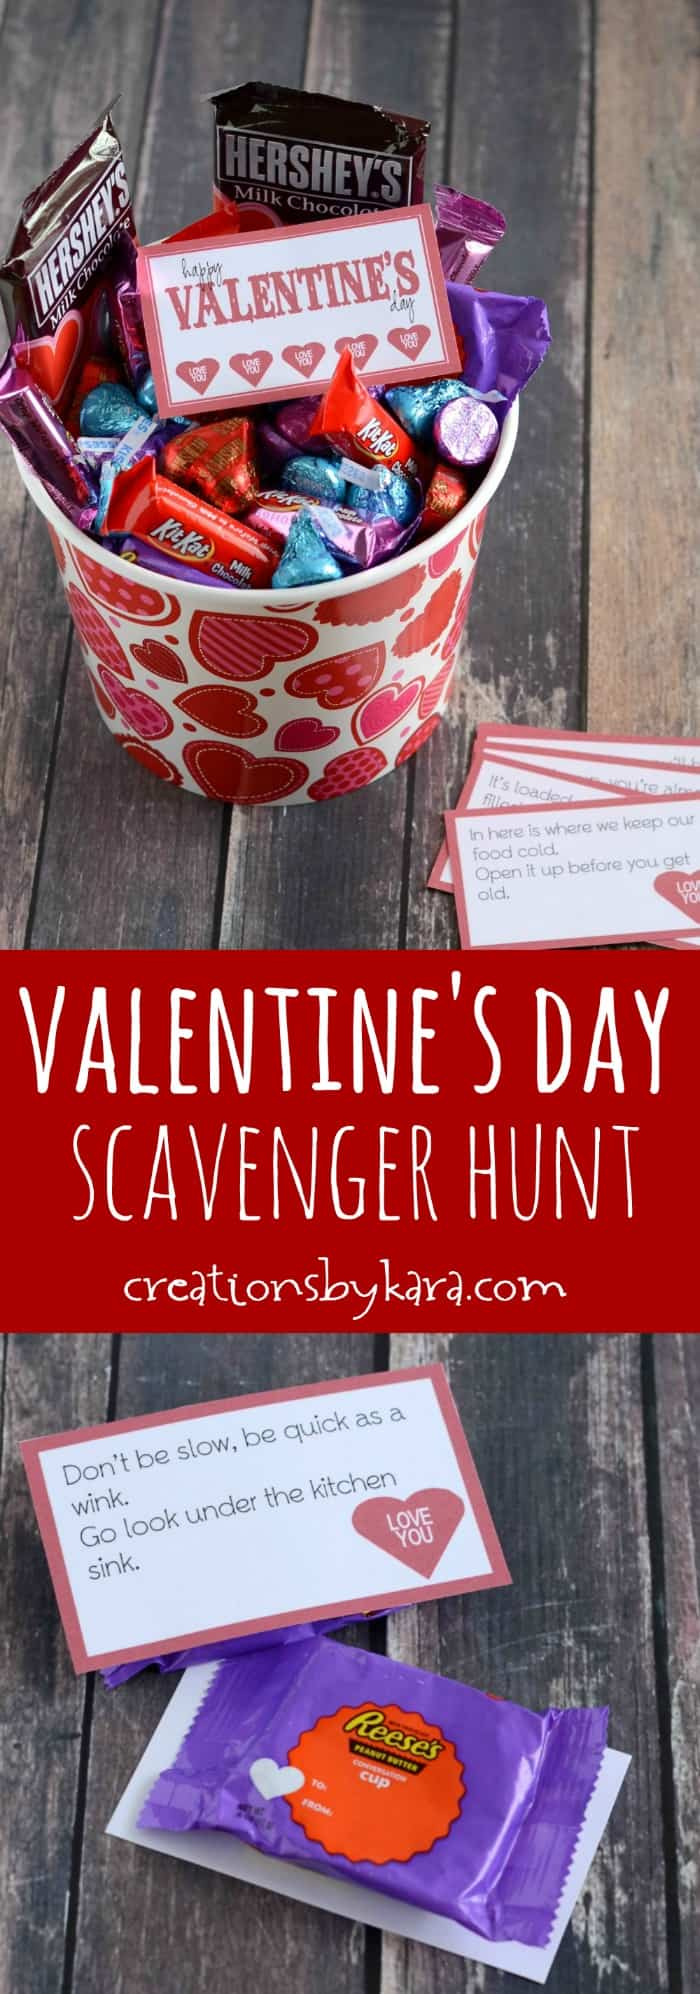 Valentines Day scavenger hunt clues with candy